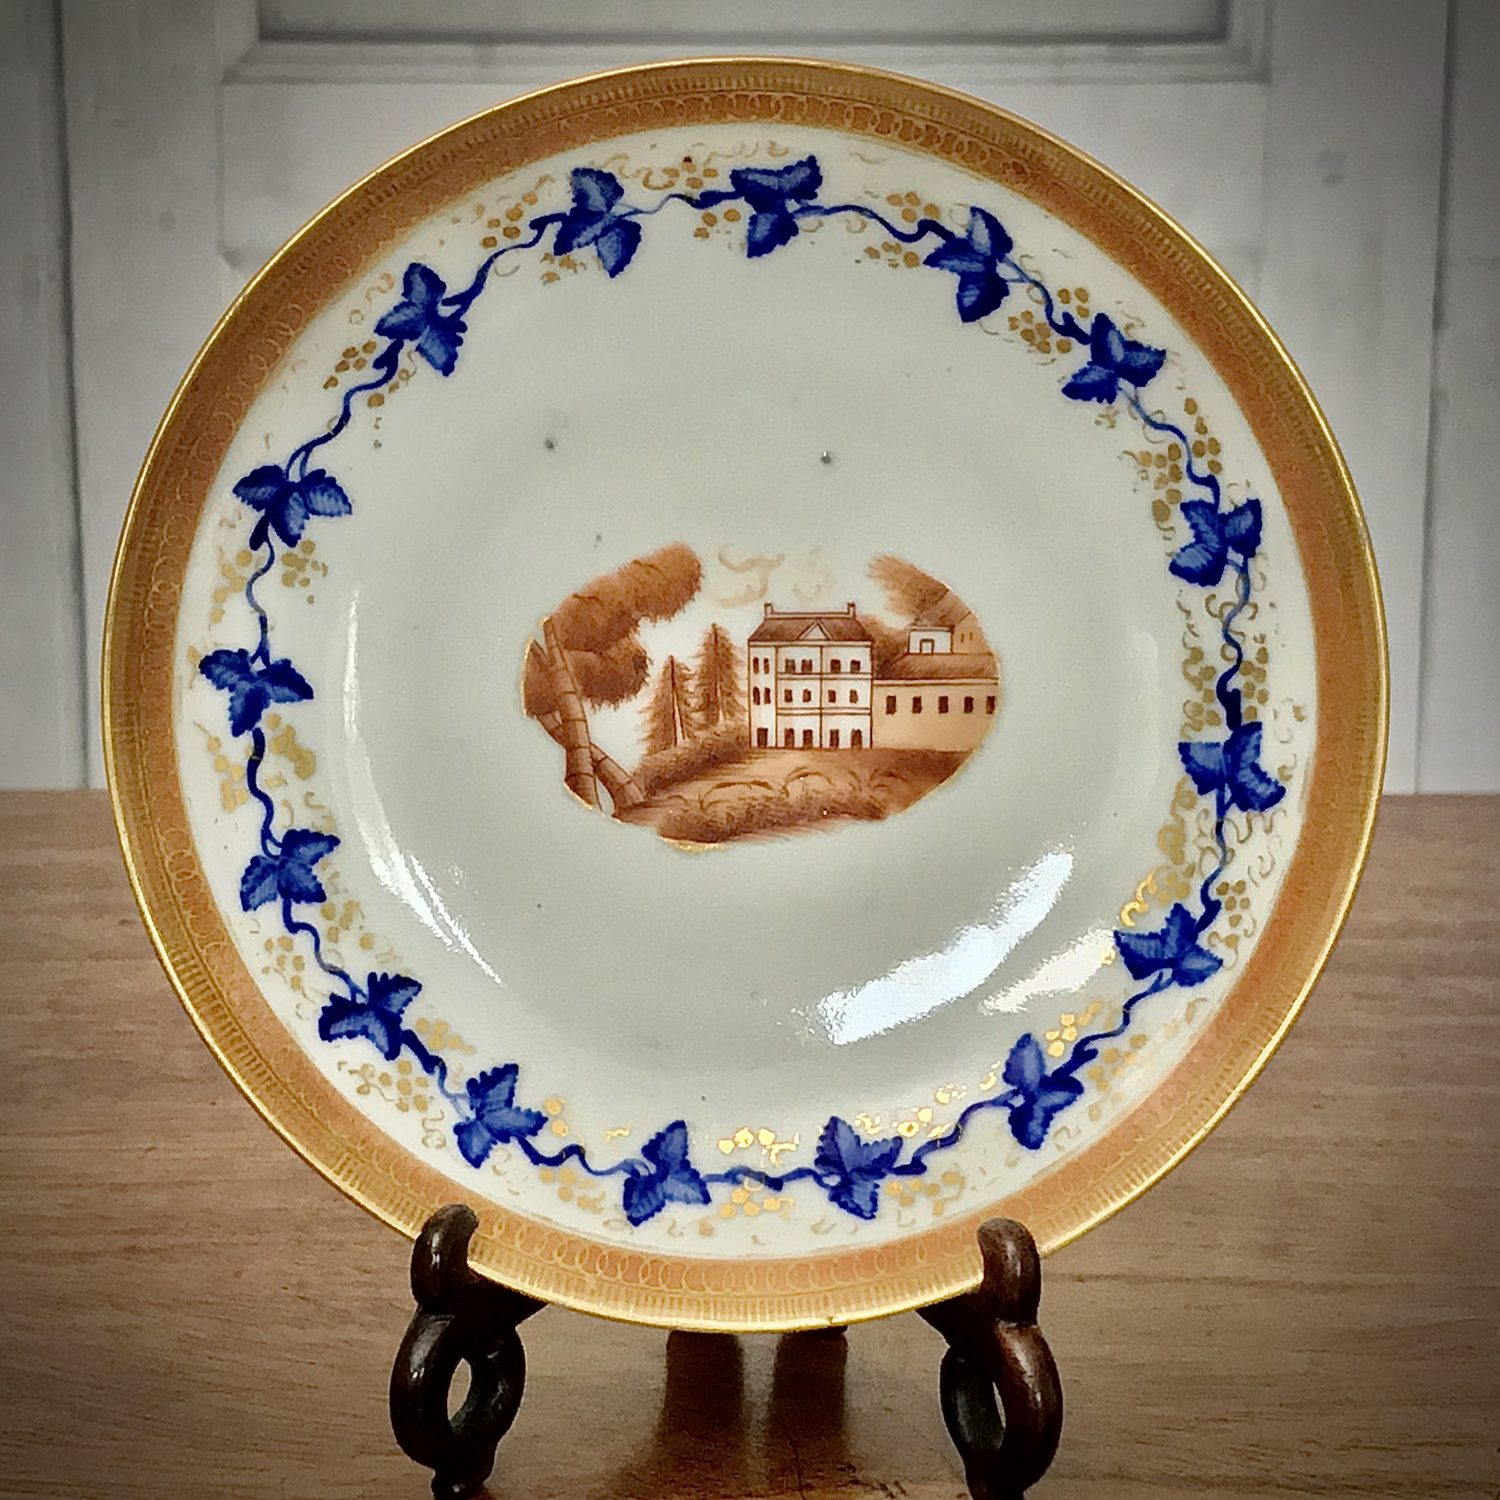 Chinese Export Porcelain Saucer With Country House Scene.